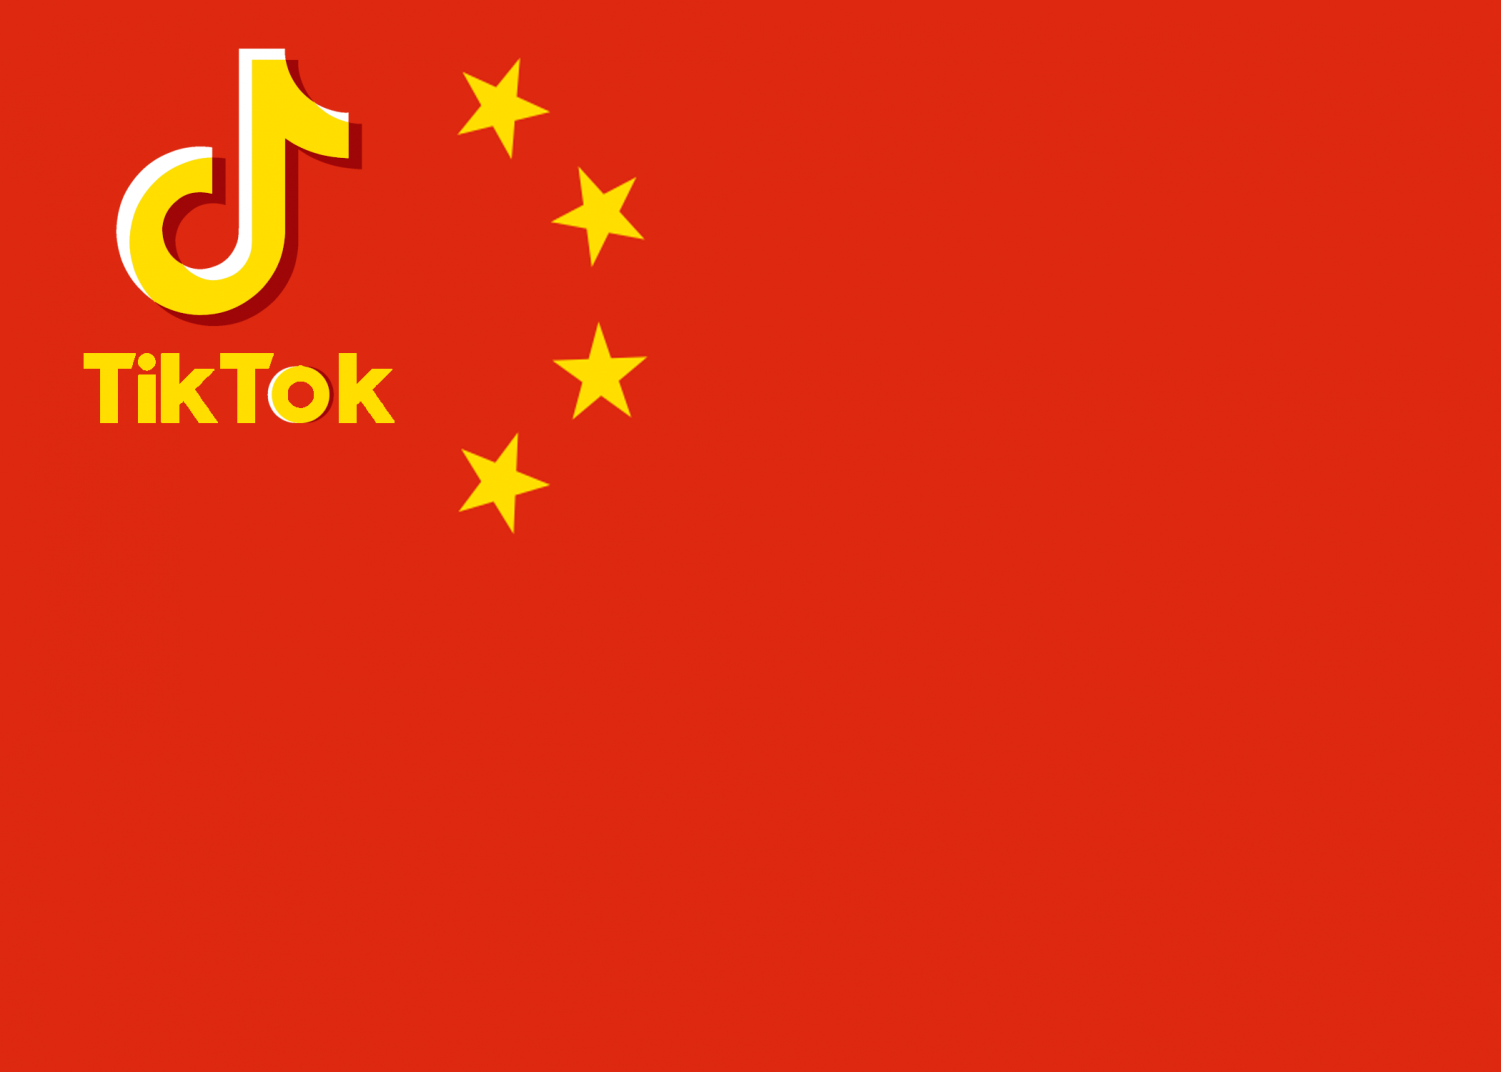 Beijing based video sharing social media app TikTok has come under fire for censoring content critical of the Chinese government as well as LGBTQ+ content on the platform.